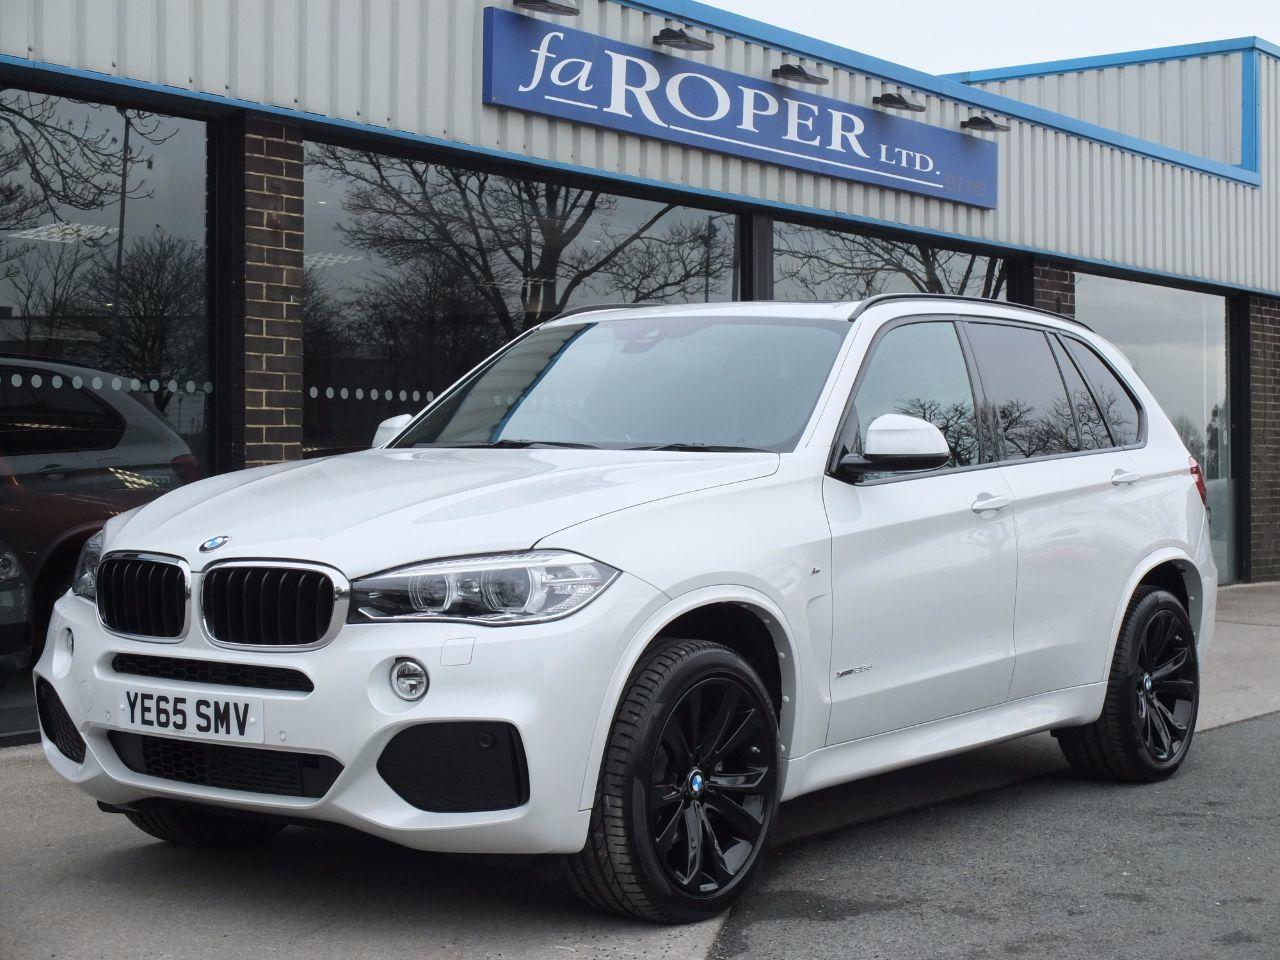 BMW X5 2.0 xDrive25d M Sport 231ps Auto Estate Diesel Mineral White MetallicBMW X5 2.0 xDrive25d M Sport 231ps Auto Estate Diesel Mineral White Metallic at fa Roper Ltd Bradford